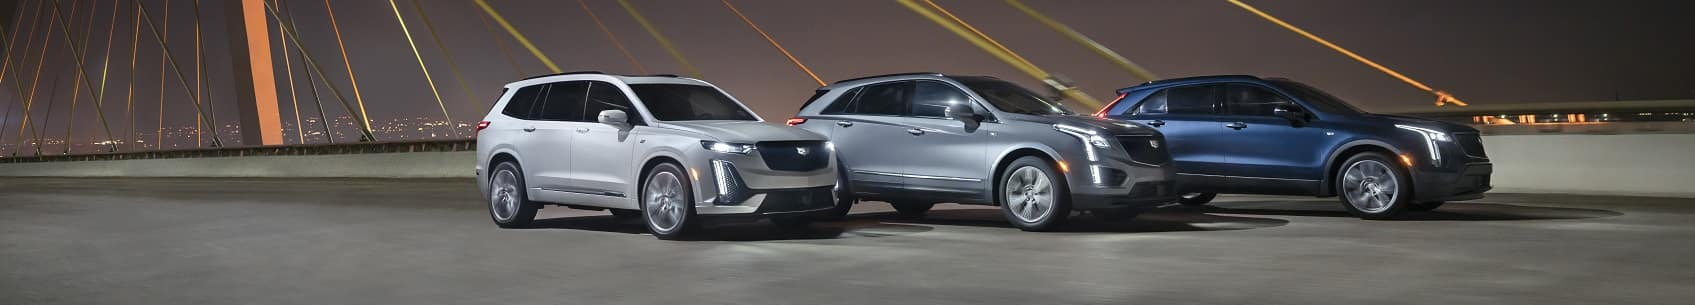 How to Get a Cadillac XT6 Lease Deal